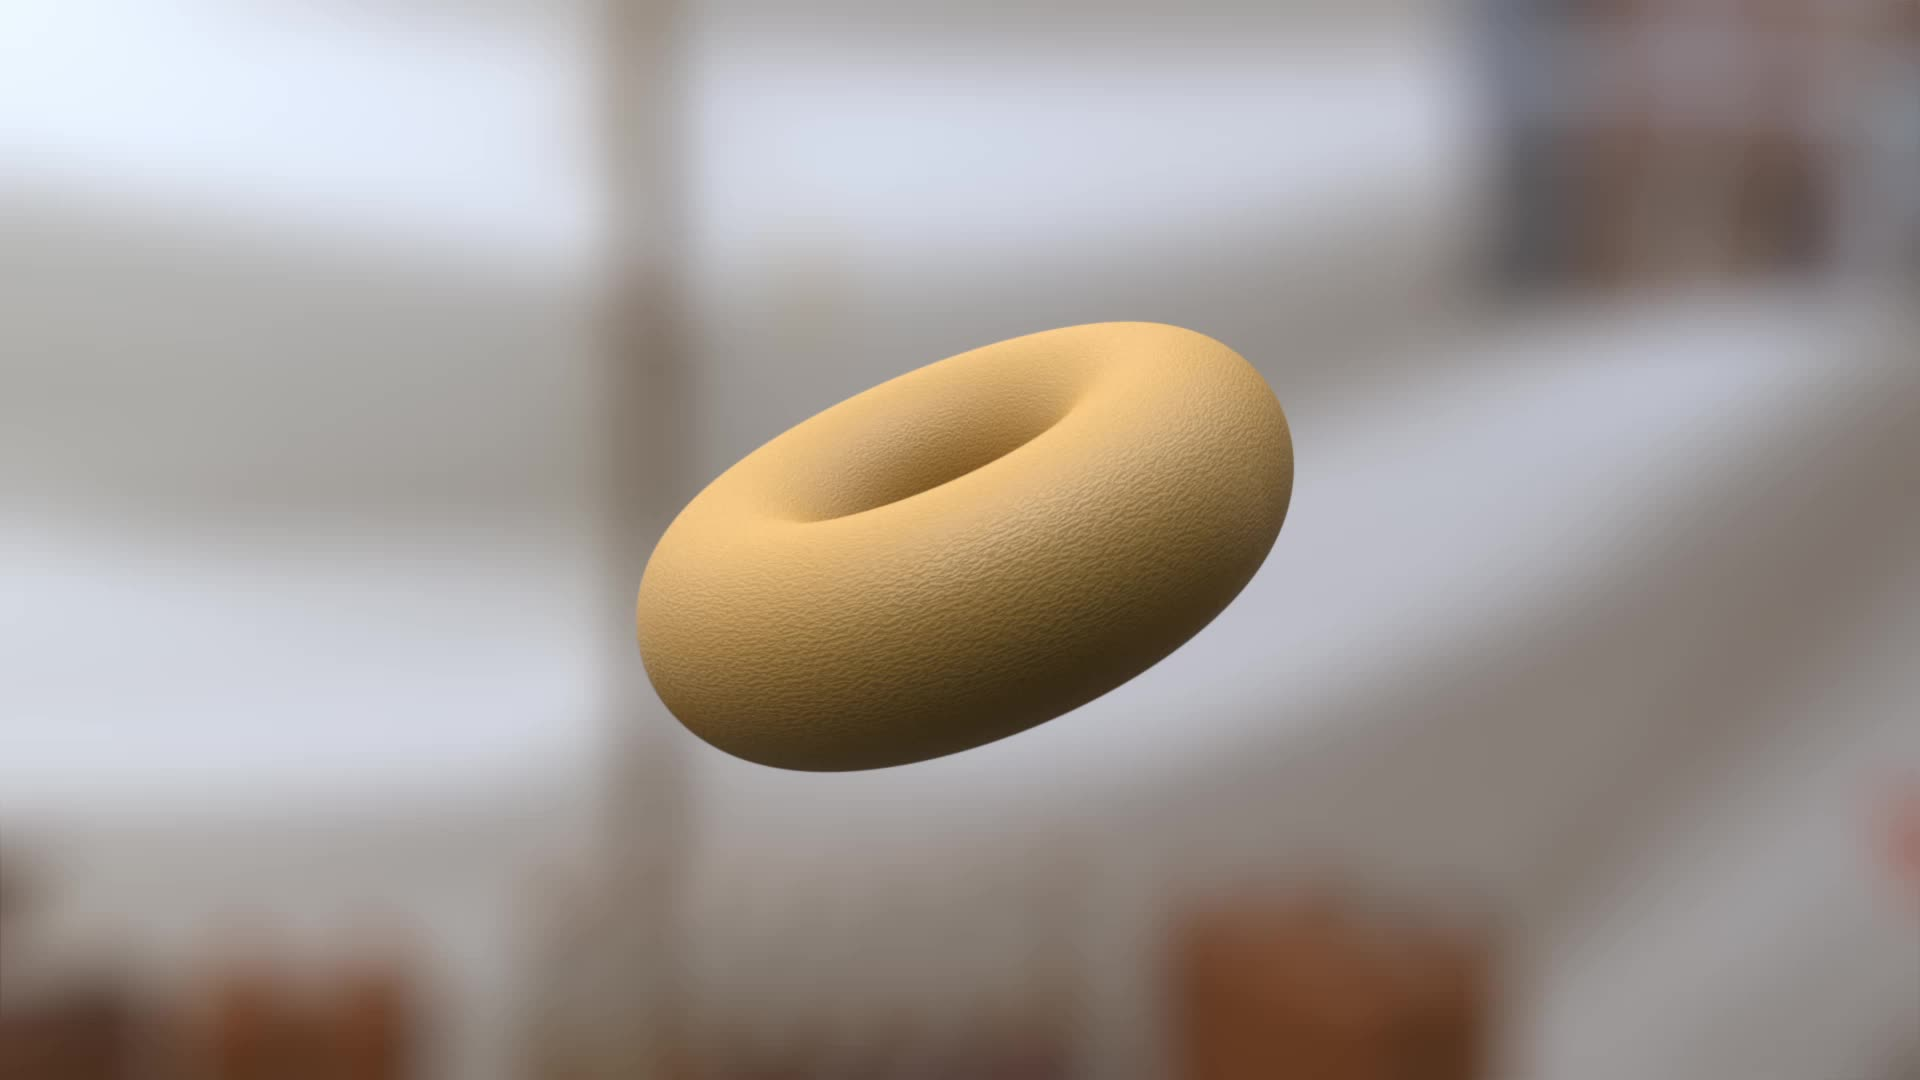 animation, donut, doughnut, food, loop, maya, minneapolis, realflow, vray, DONUT GIFs